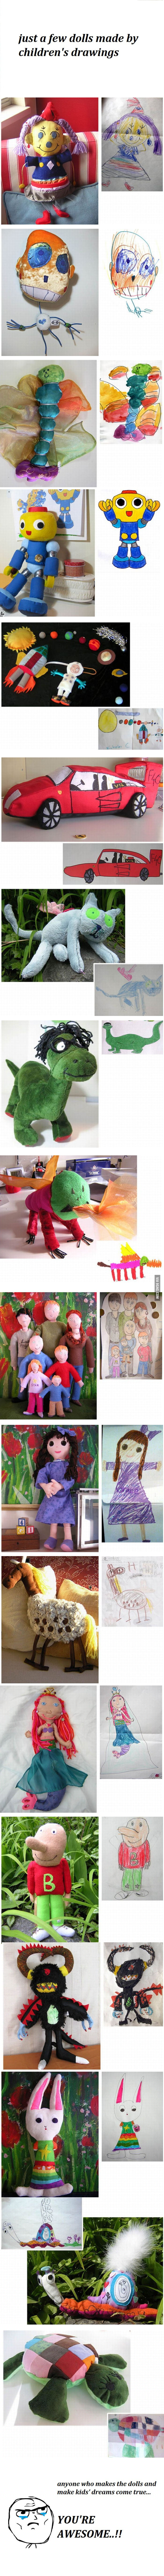 Dolls made by children's drawings